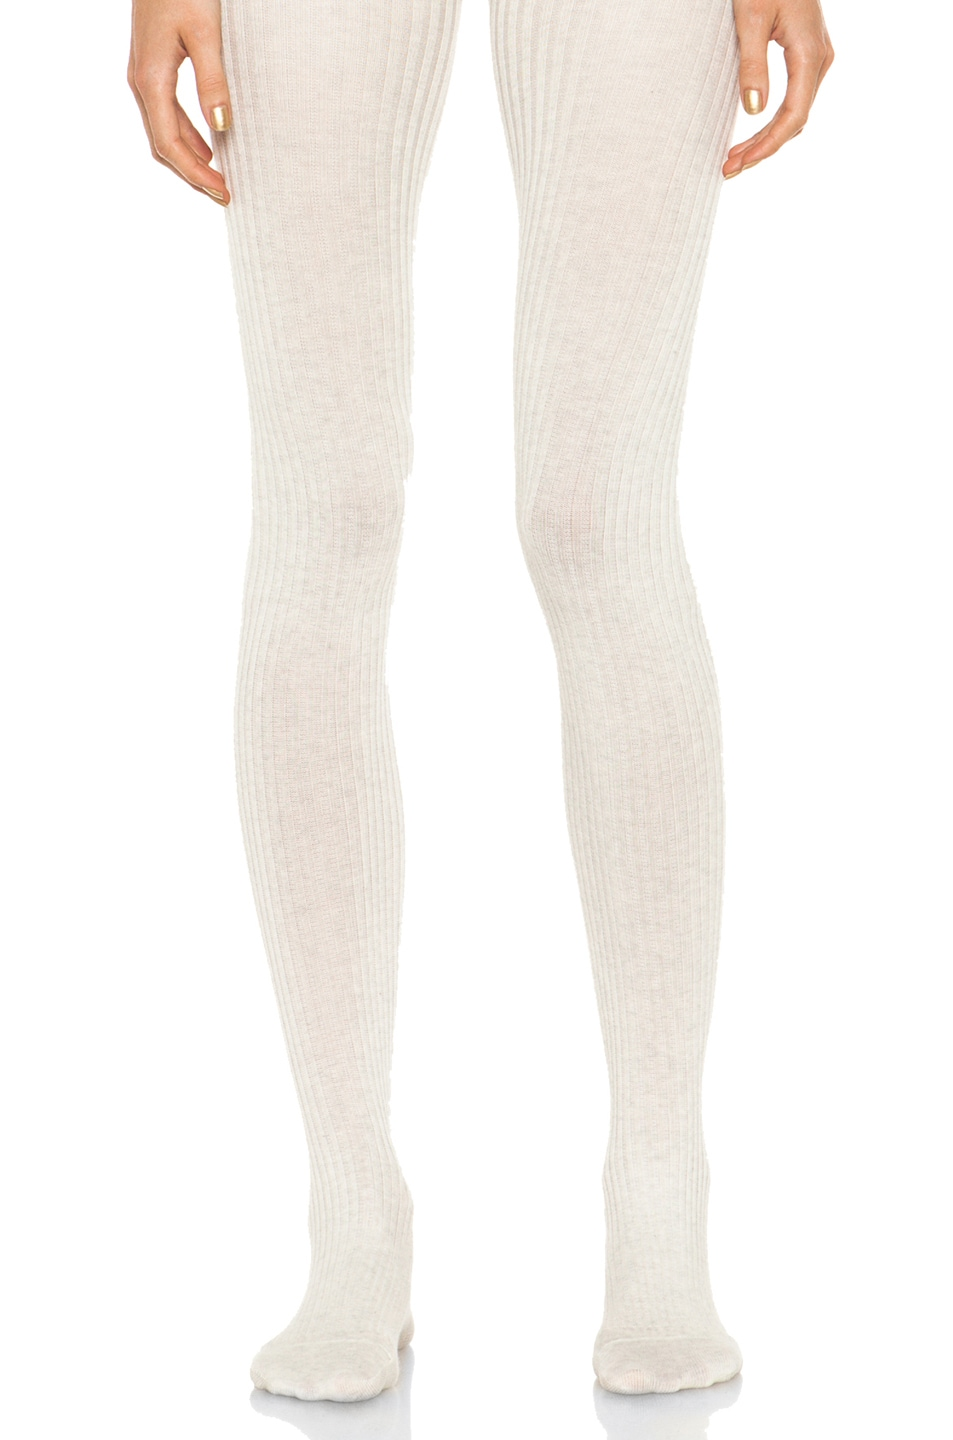 Image 1 of A.P.C. Collant Tights in Beige